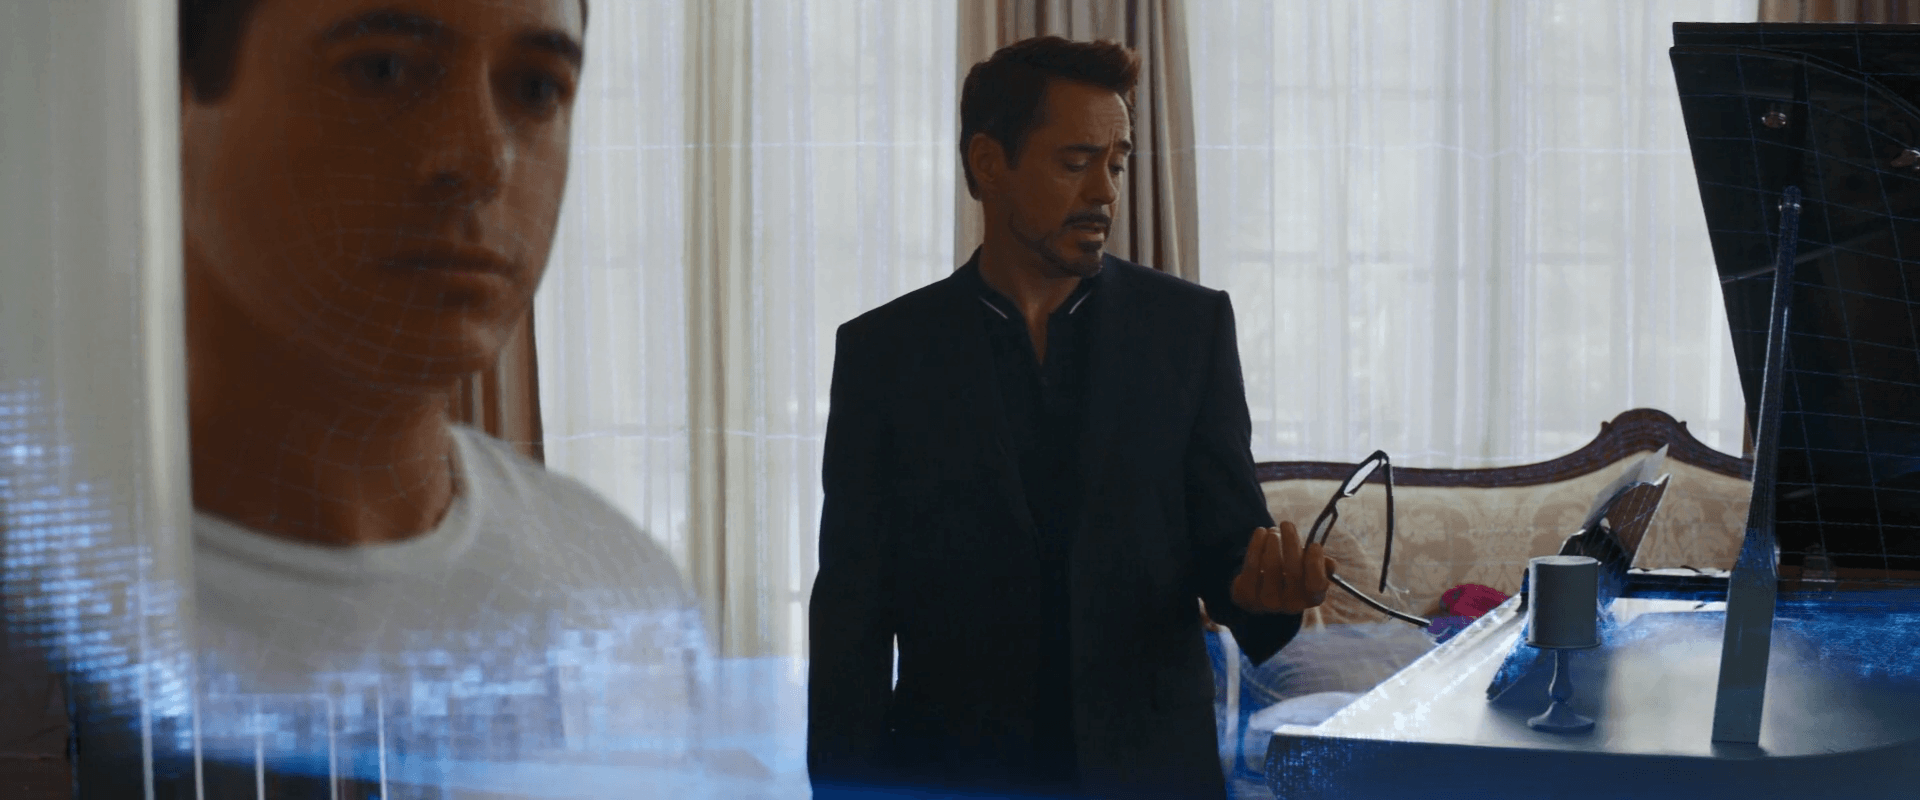 Robert Downey Jr. as Tony Stark in Captain America: Civil War